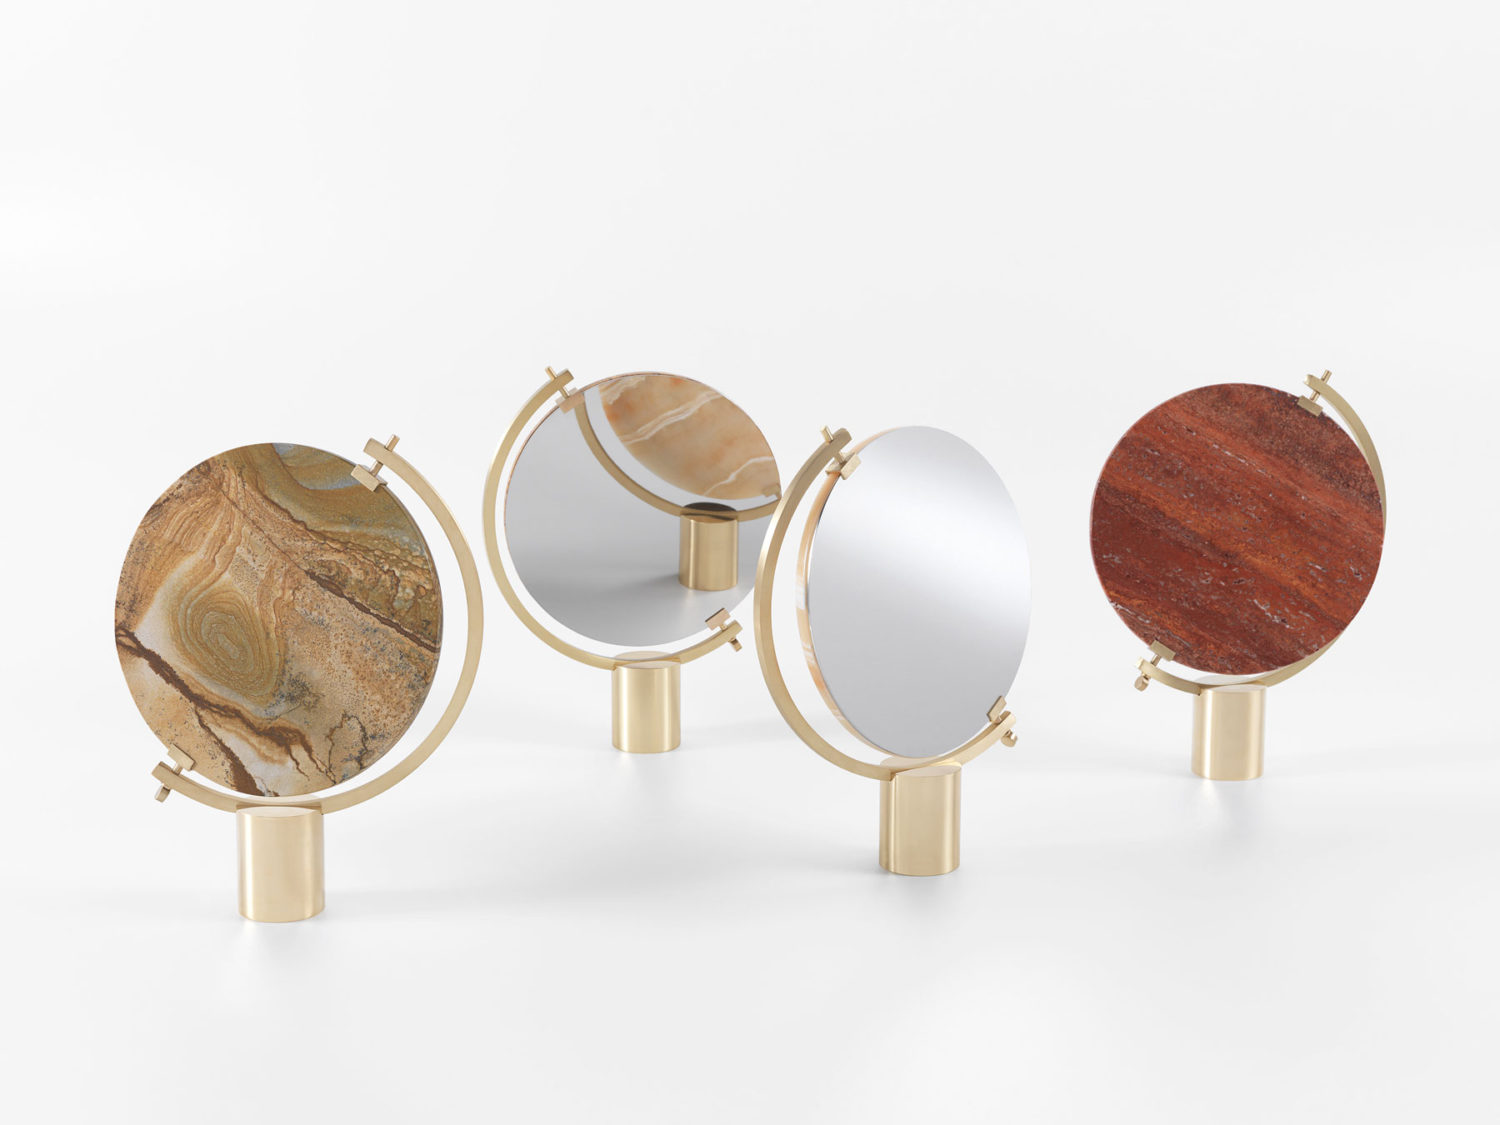 'Naia' by CTRLZAK for JCP. The combination of exotic stone, brass and mirror is hard to resist.